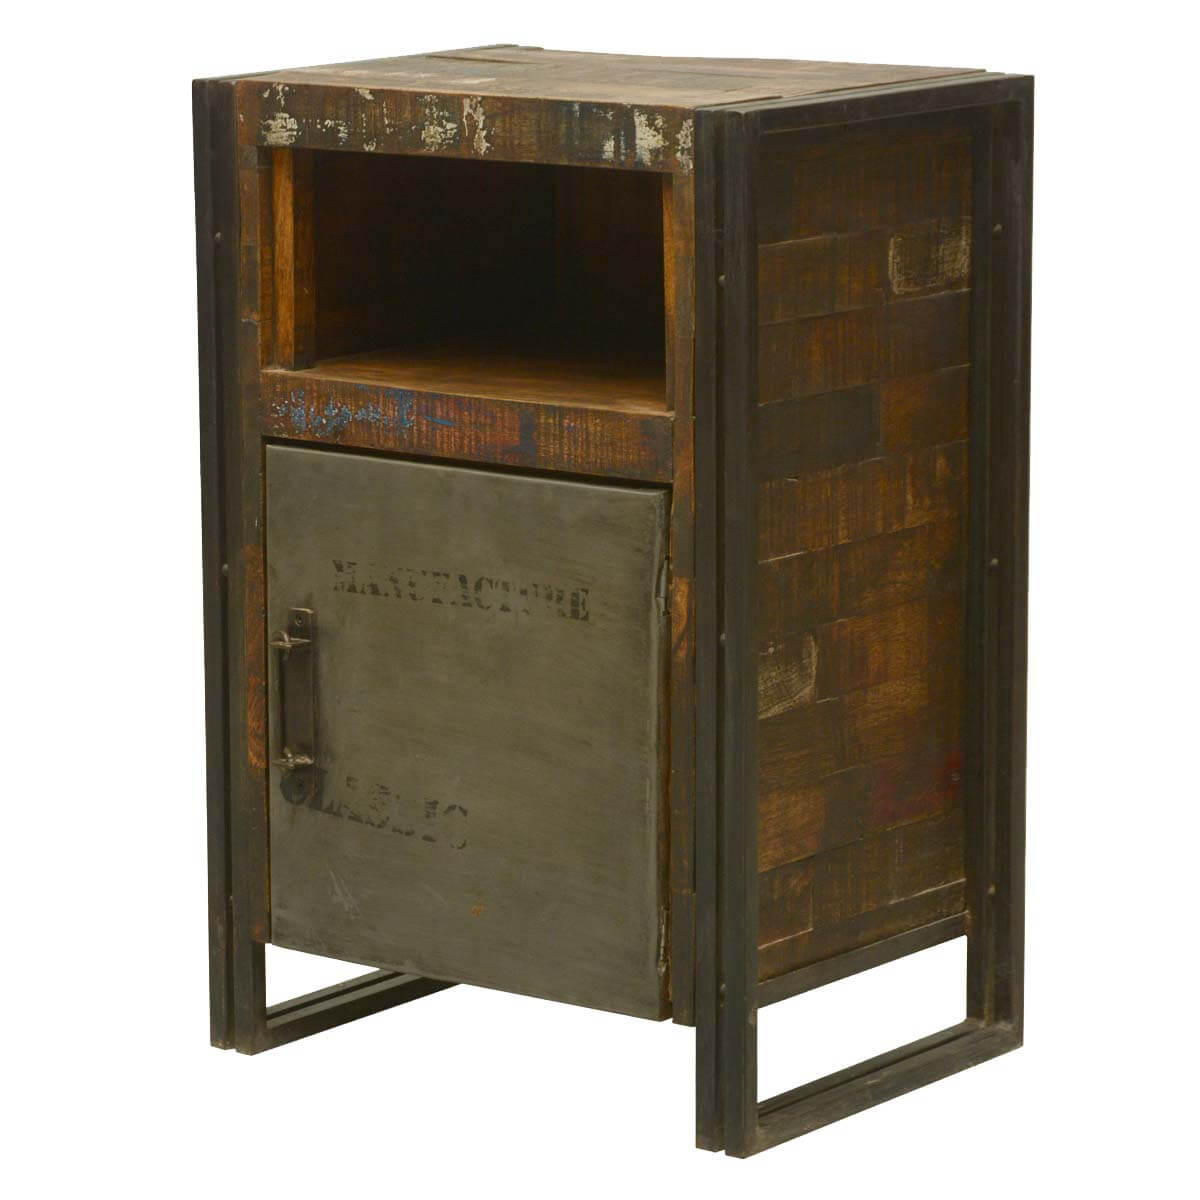 Industrial Fusion Reclaimed Wood amp Iron Nightstand Cabinet  : 5798 from sierralivingconcepts.com size 1200 x 1200 jpeg 94kB